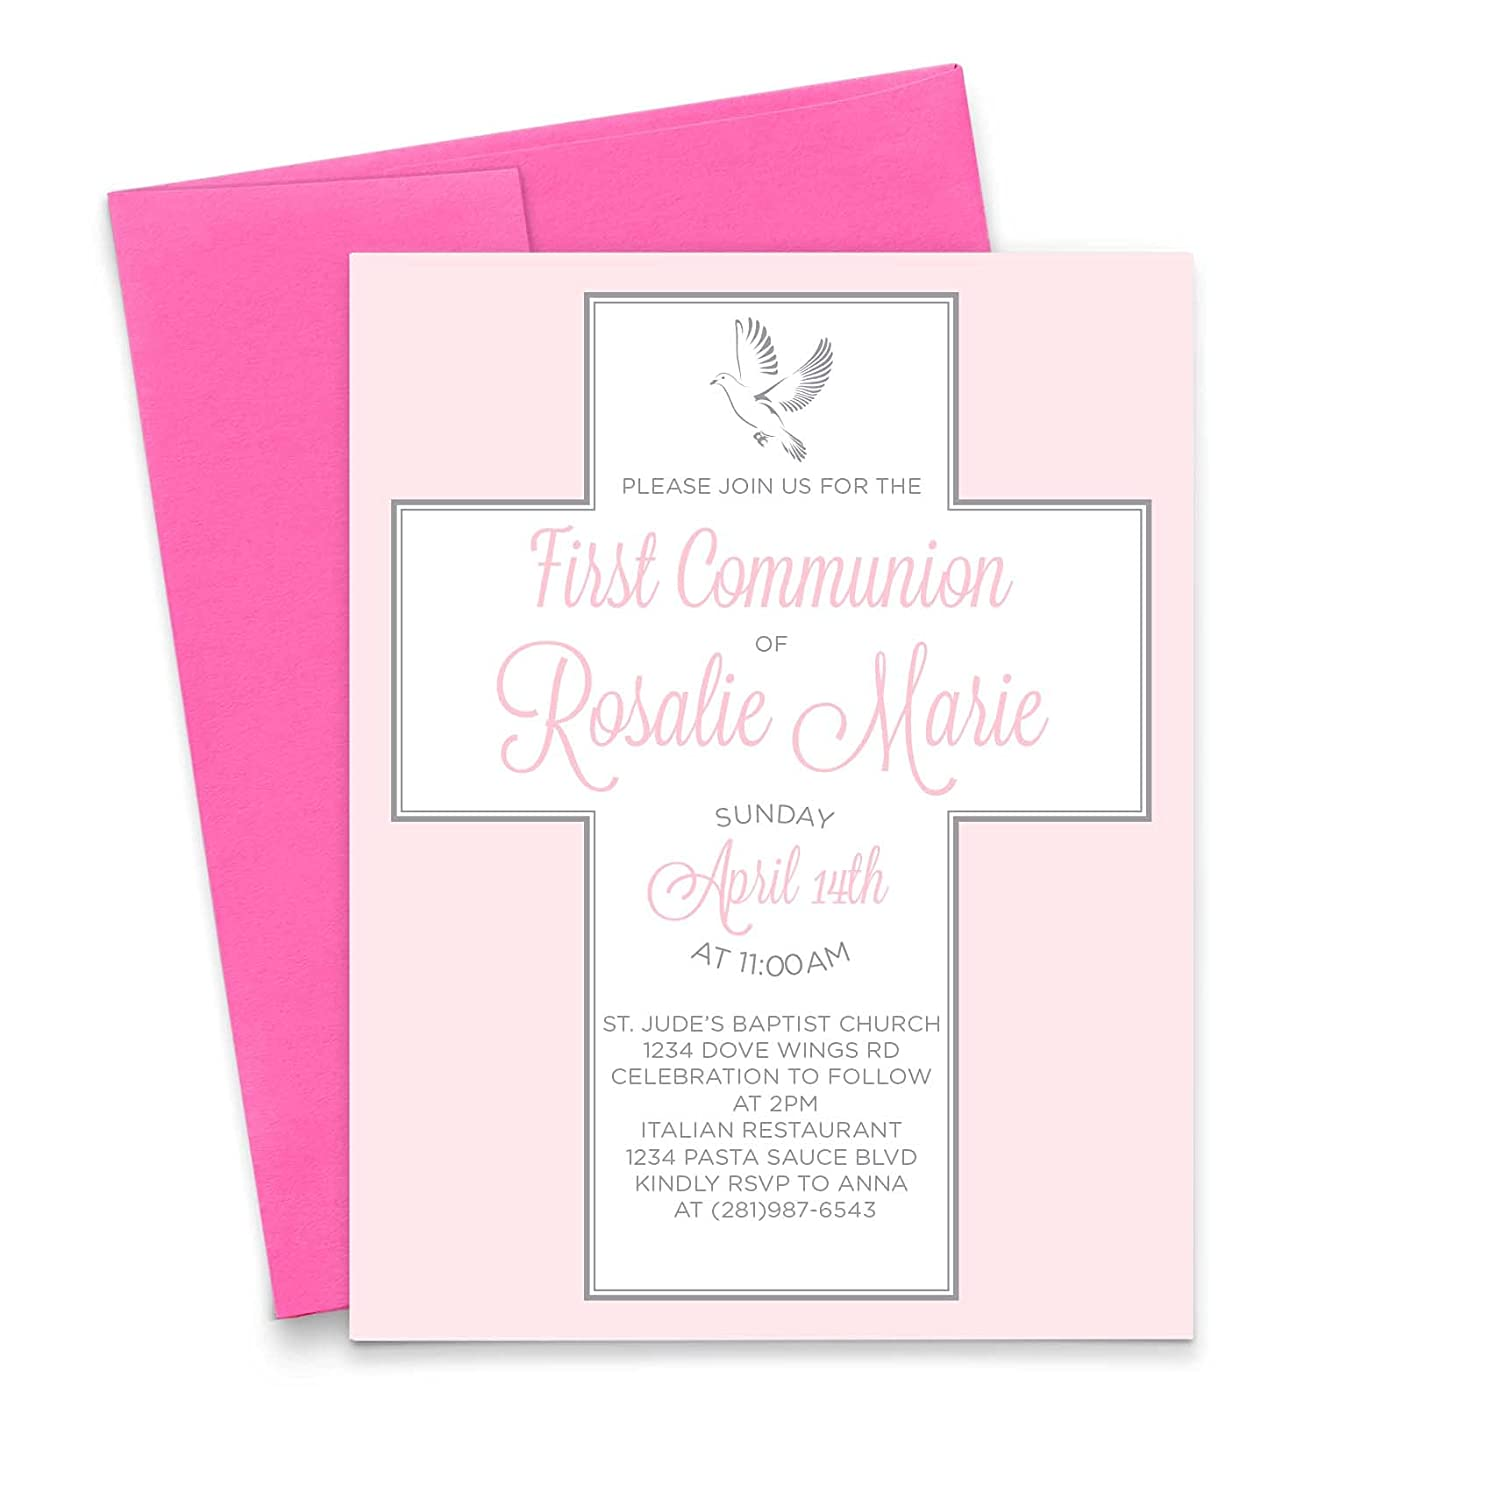 Denver Mall Personalized First Communion Don't miss the campaign Invitations for and M Girls Simple